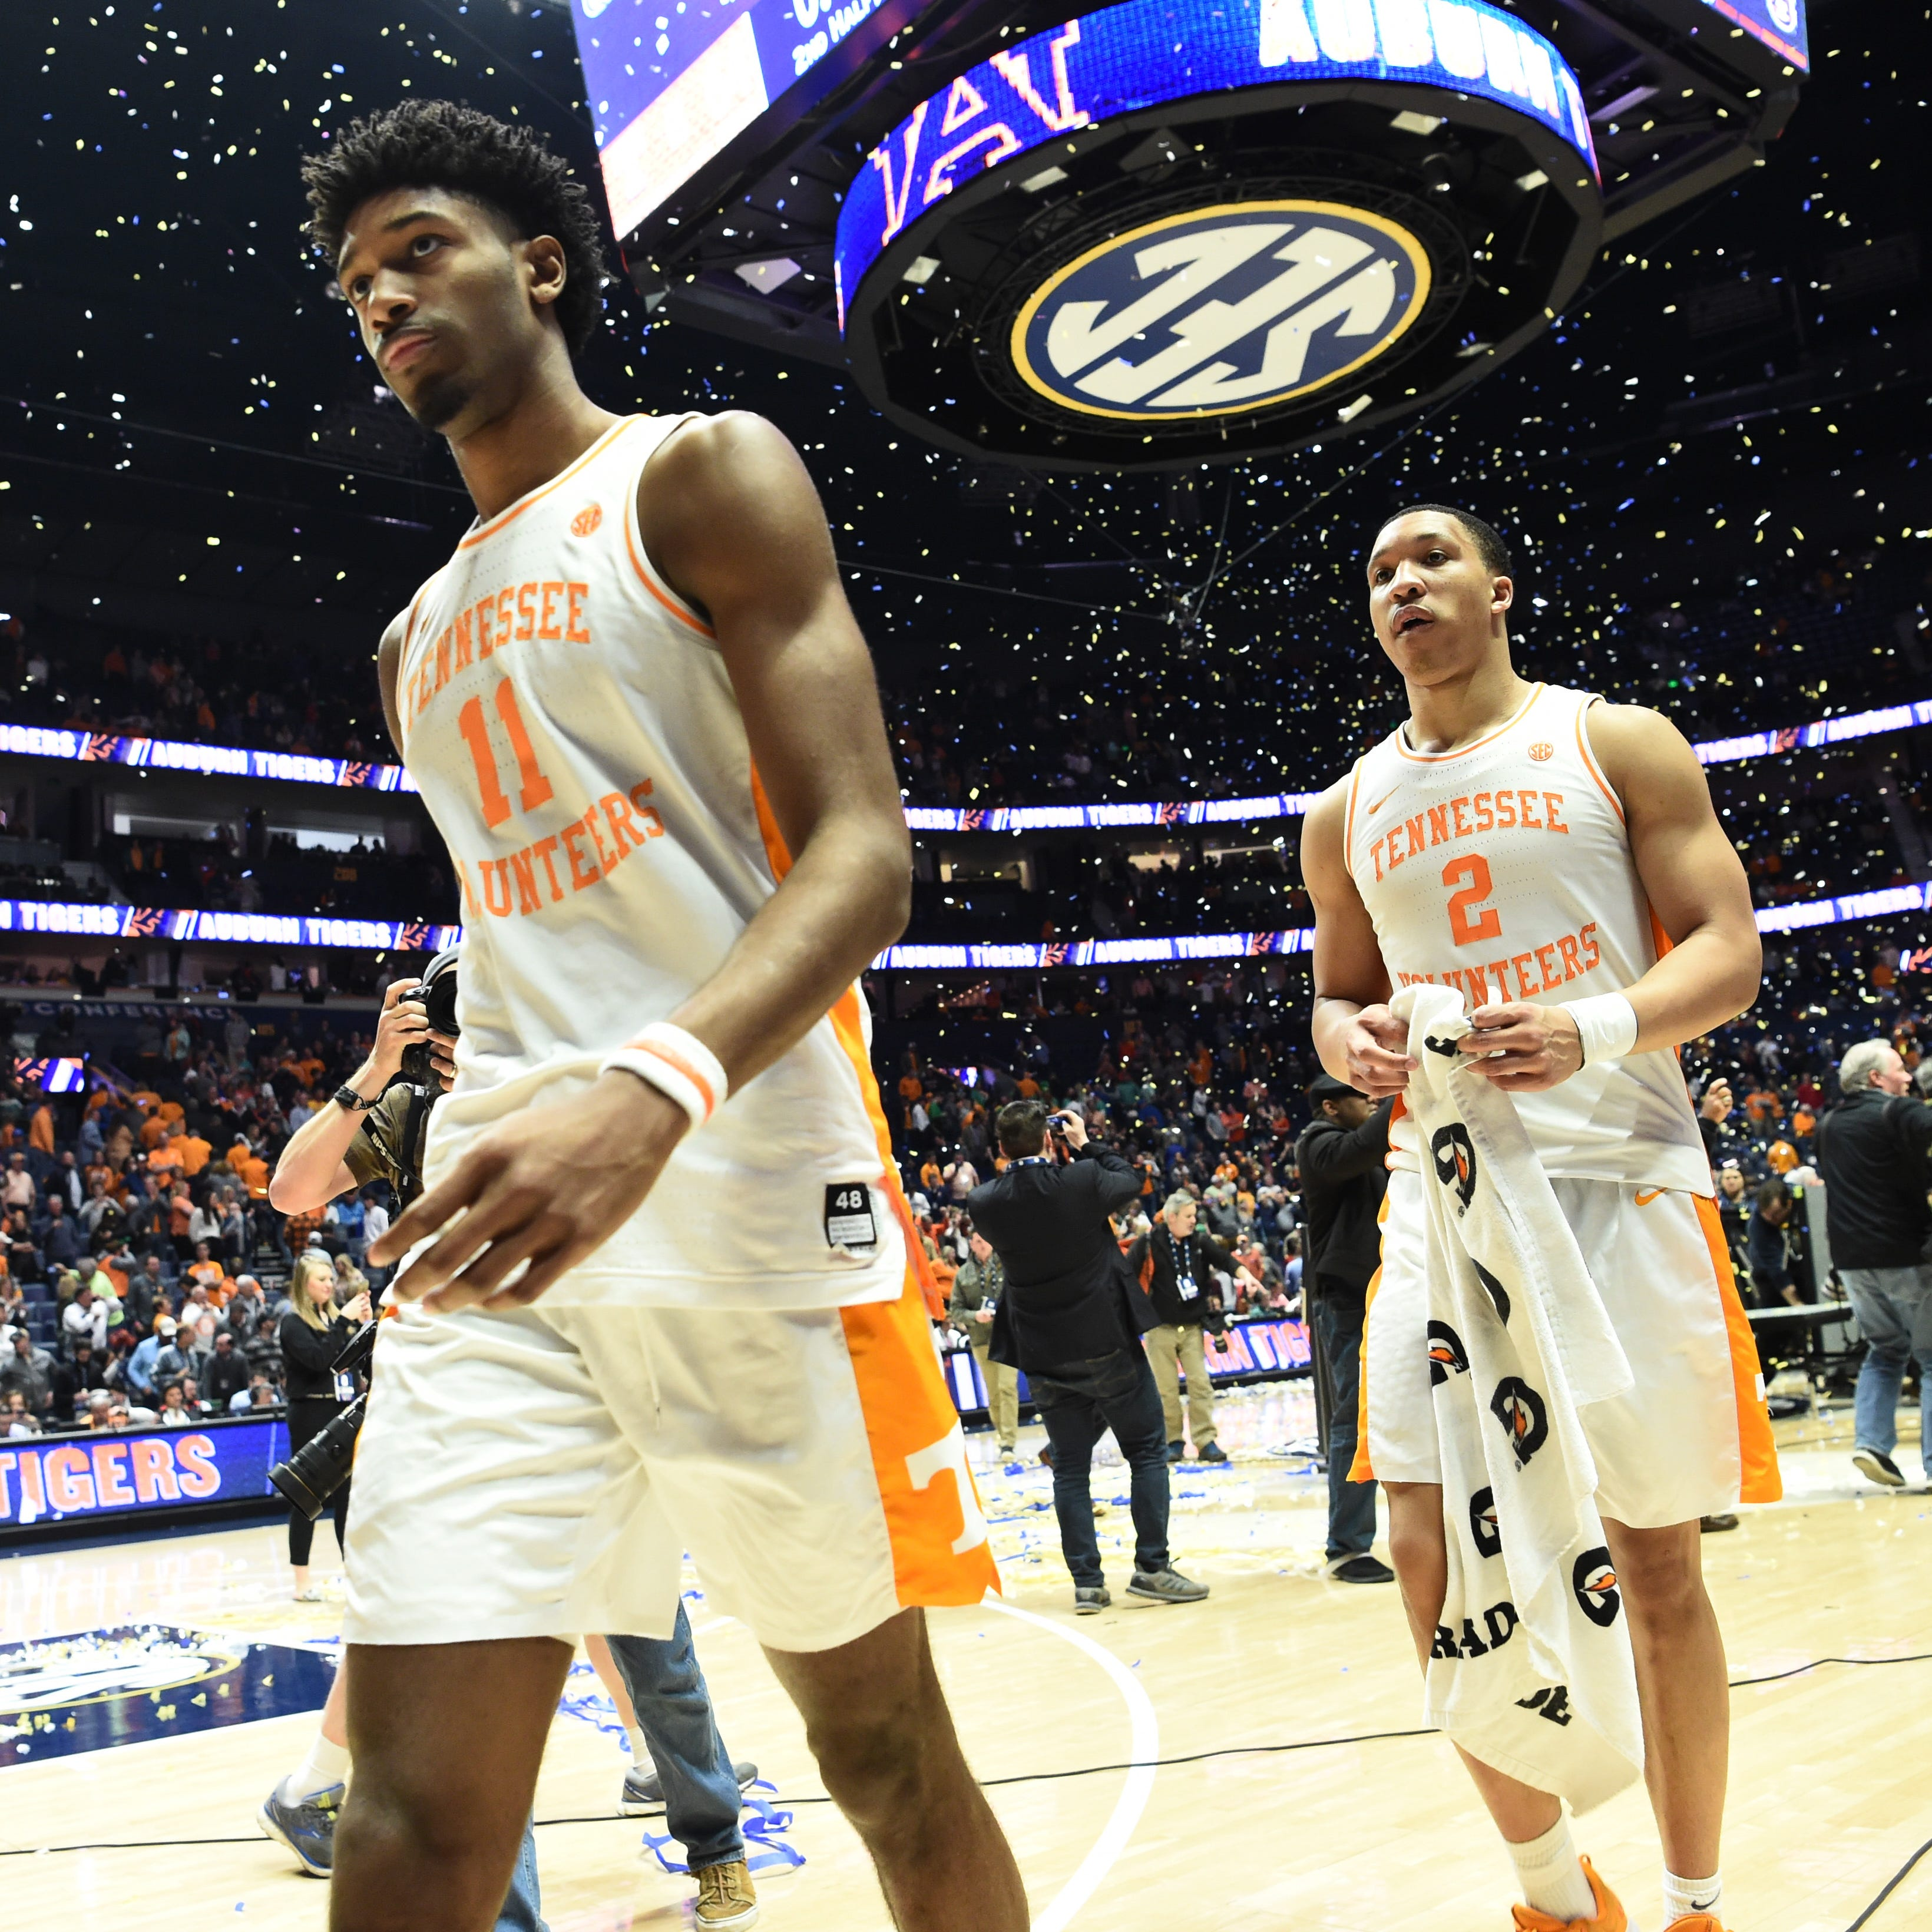 Tennessee basketball blown out by Auburn in SEC Tournament title game